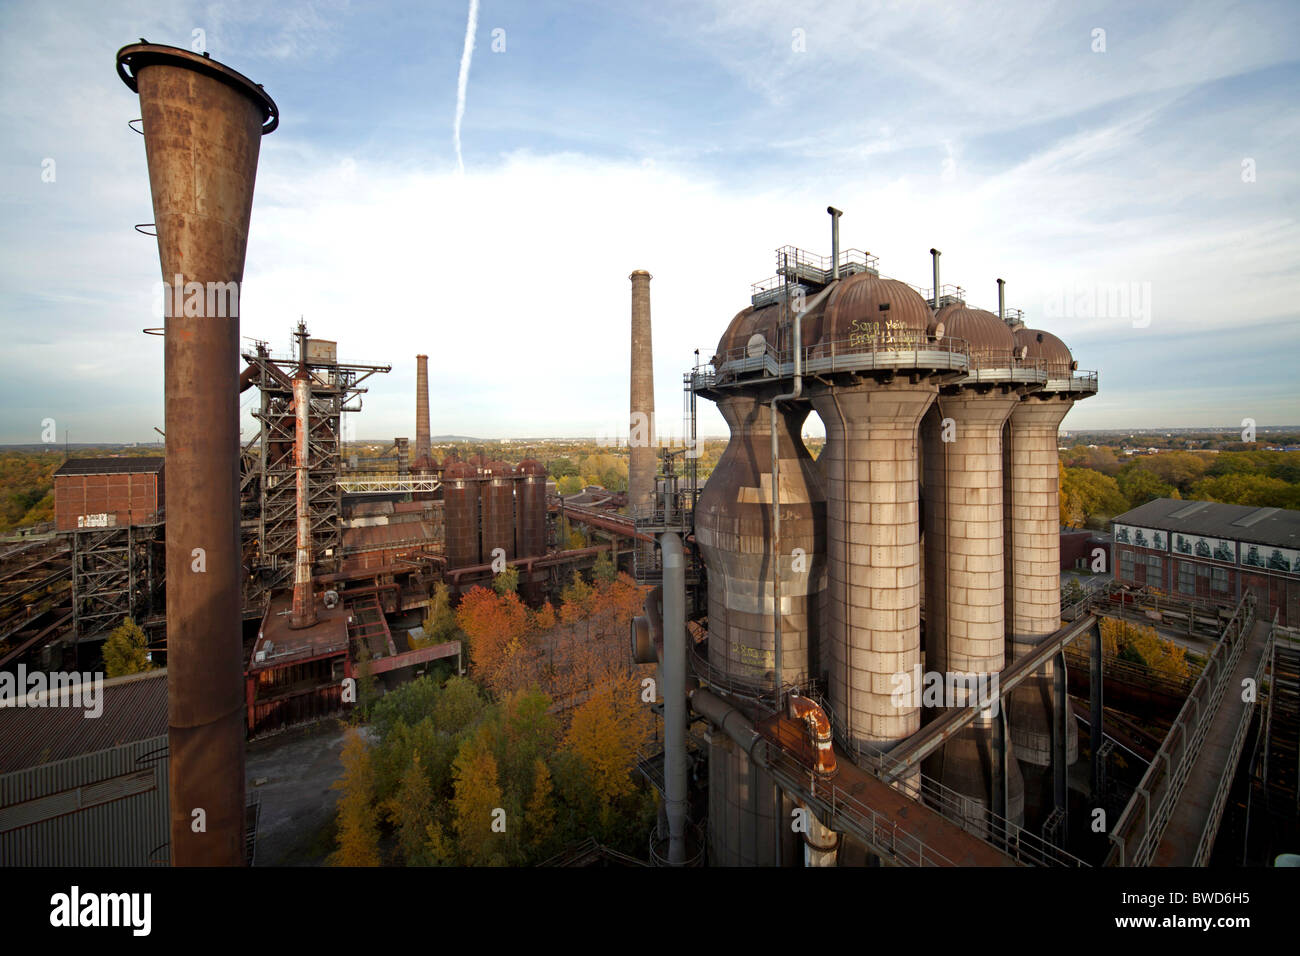 abandoned industrial complex Landschaftspark Duisburg-Nord in Germany - Stock Image